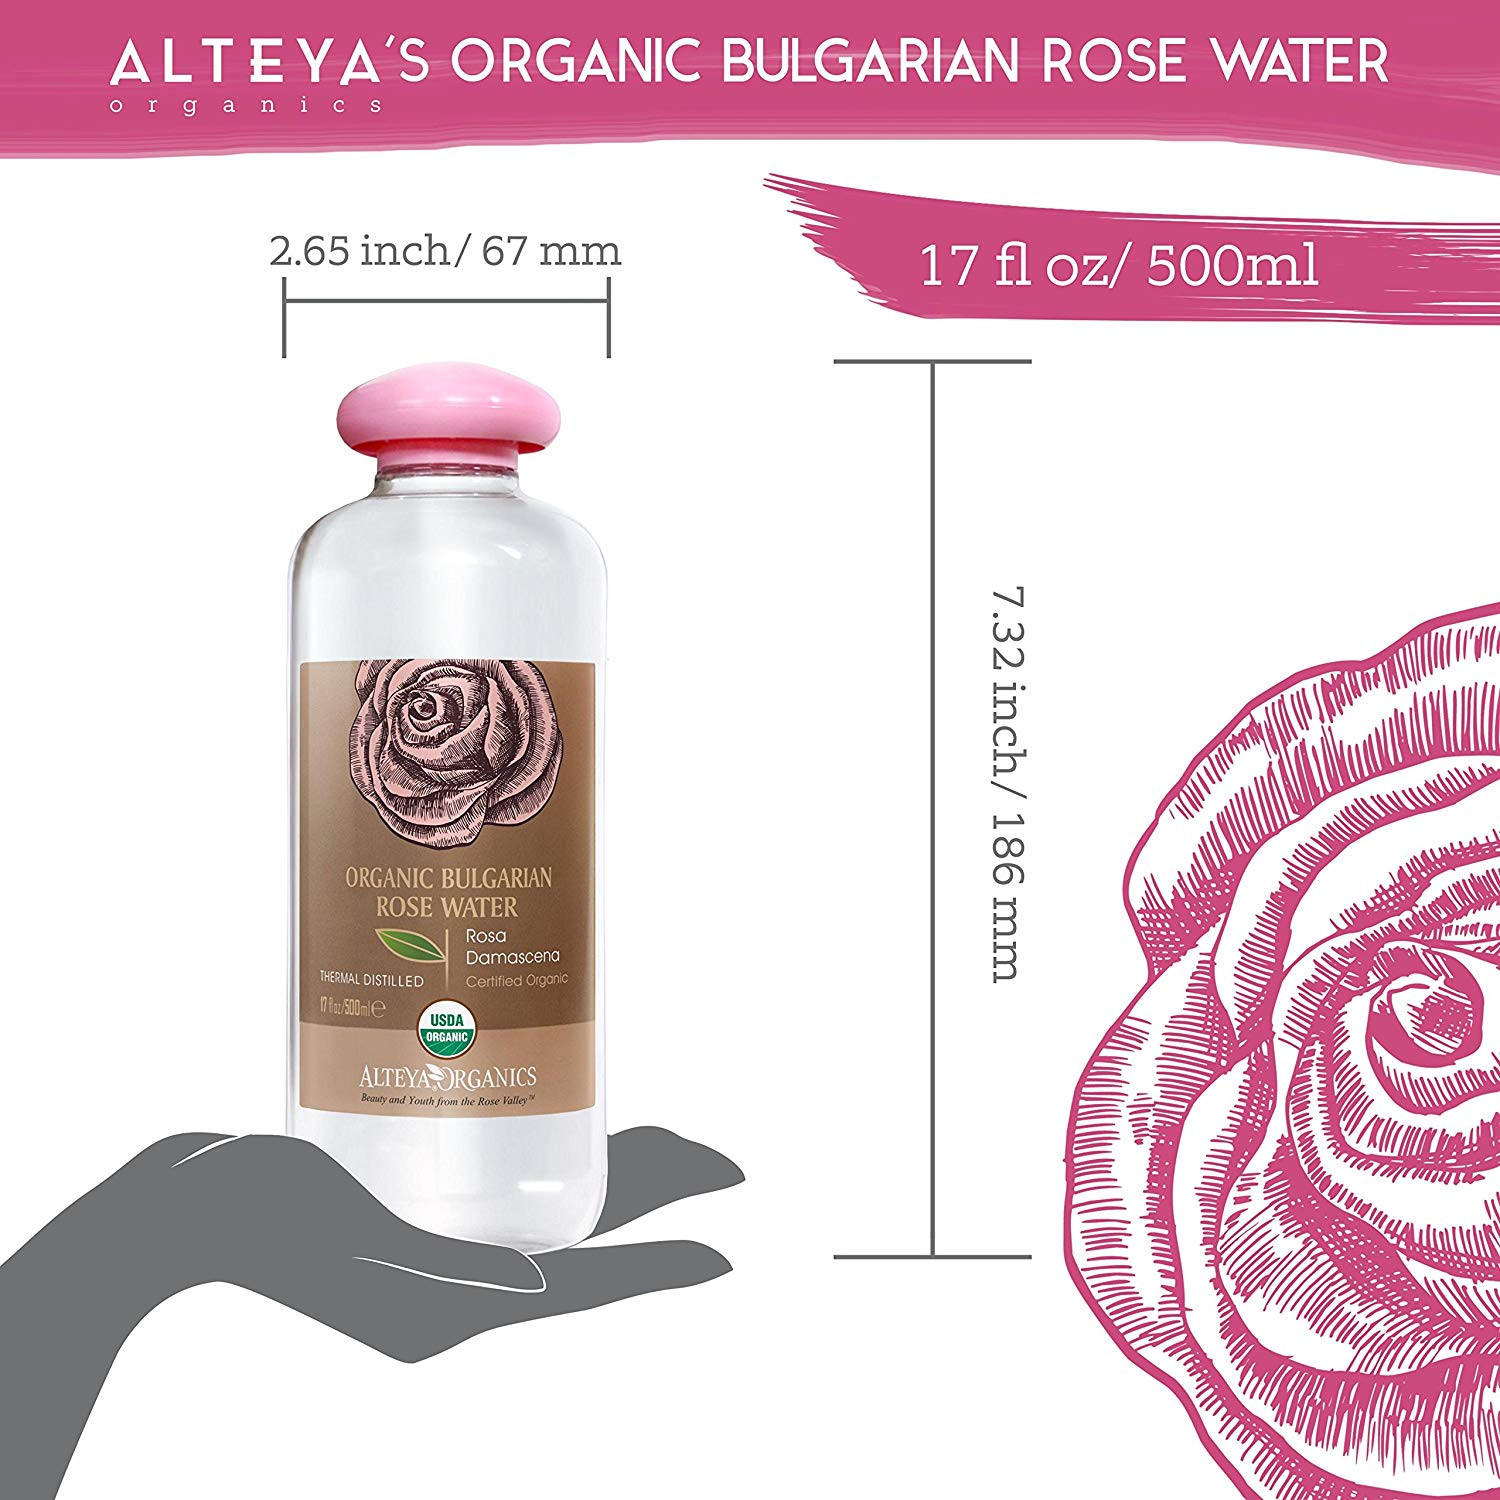 Alteya Organic Rose Water 500ml USDA Certified Organic BIG BOTTLE Authentic Pure Natural Rosa Damascena Flower Water Steam Distilled and Sold